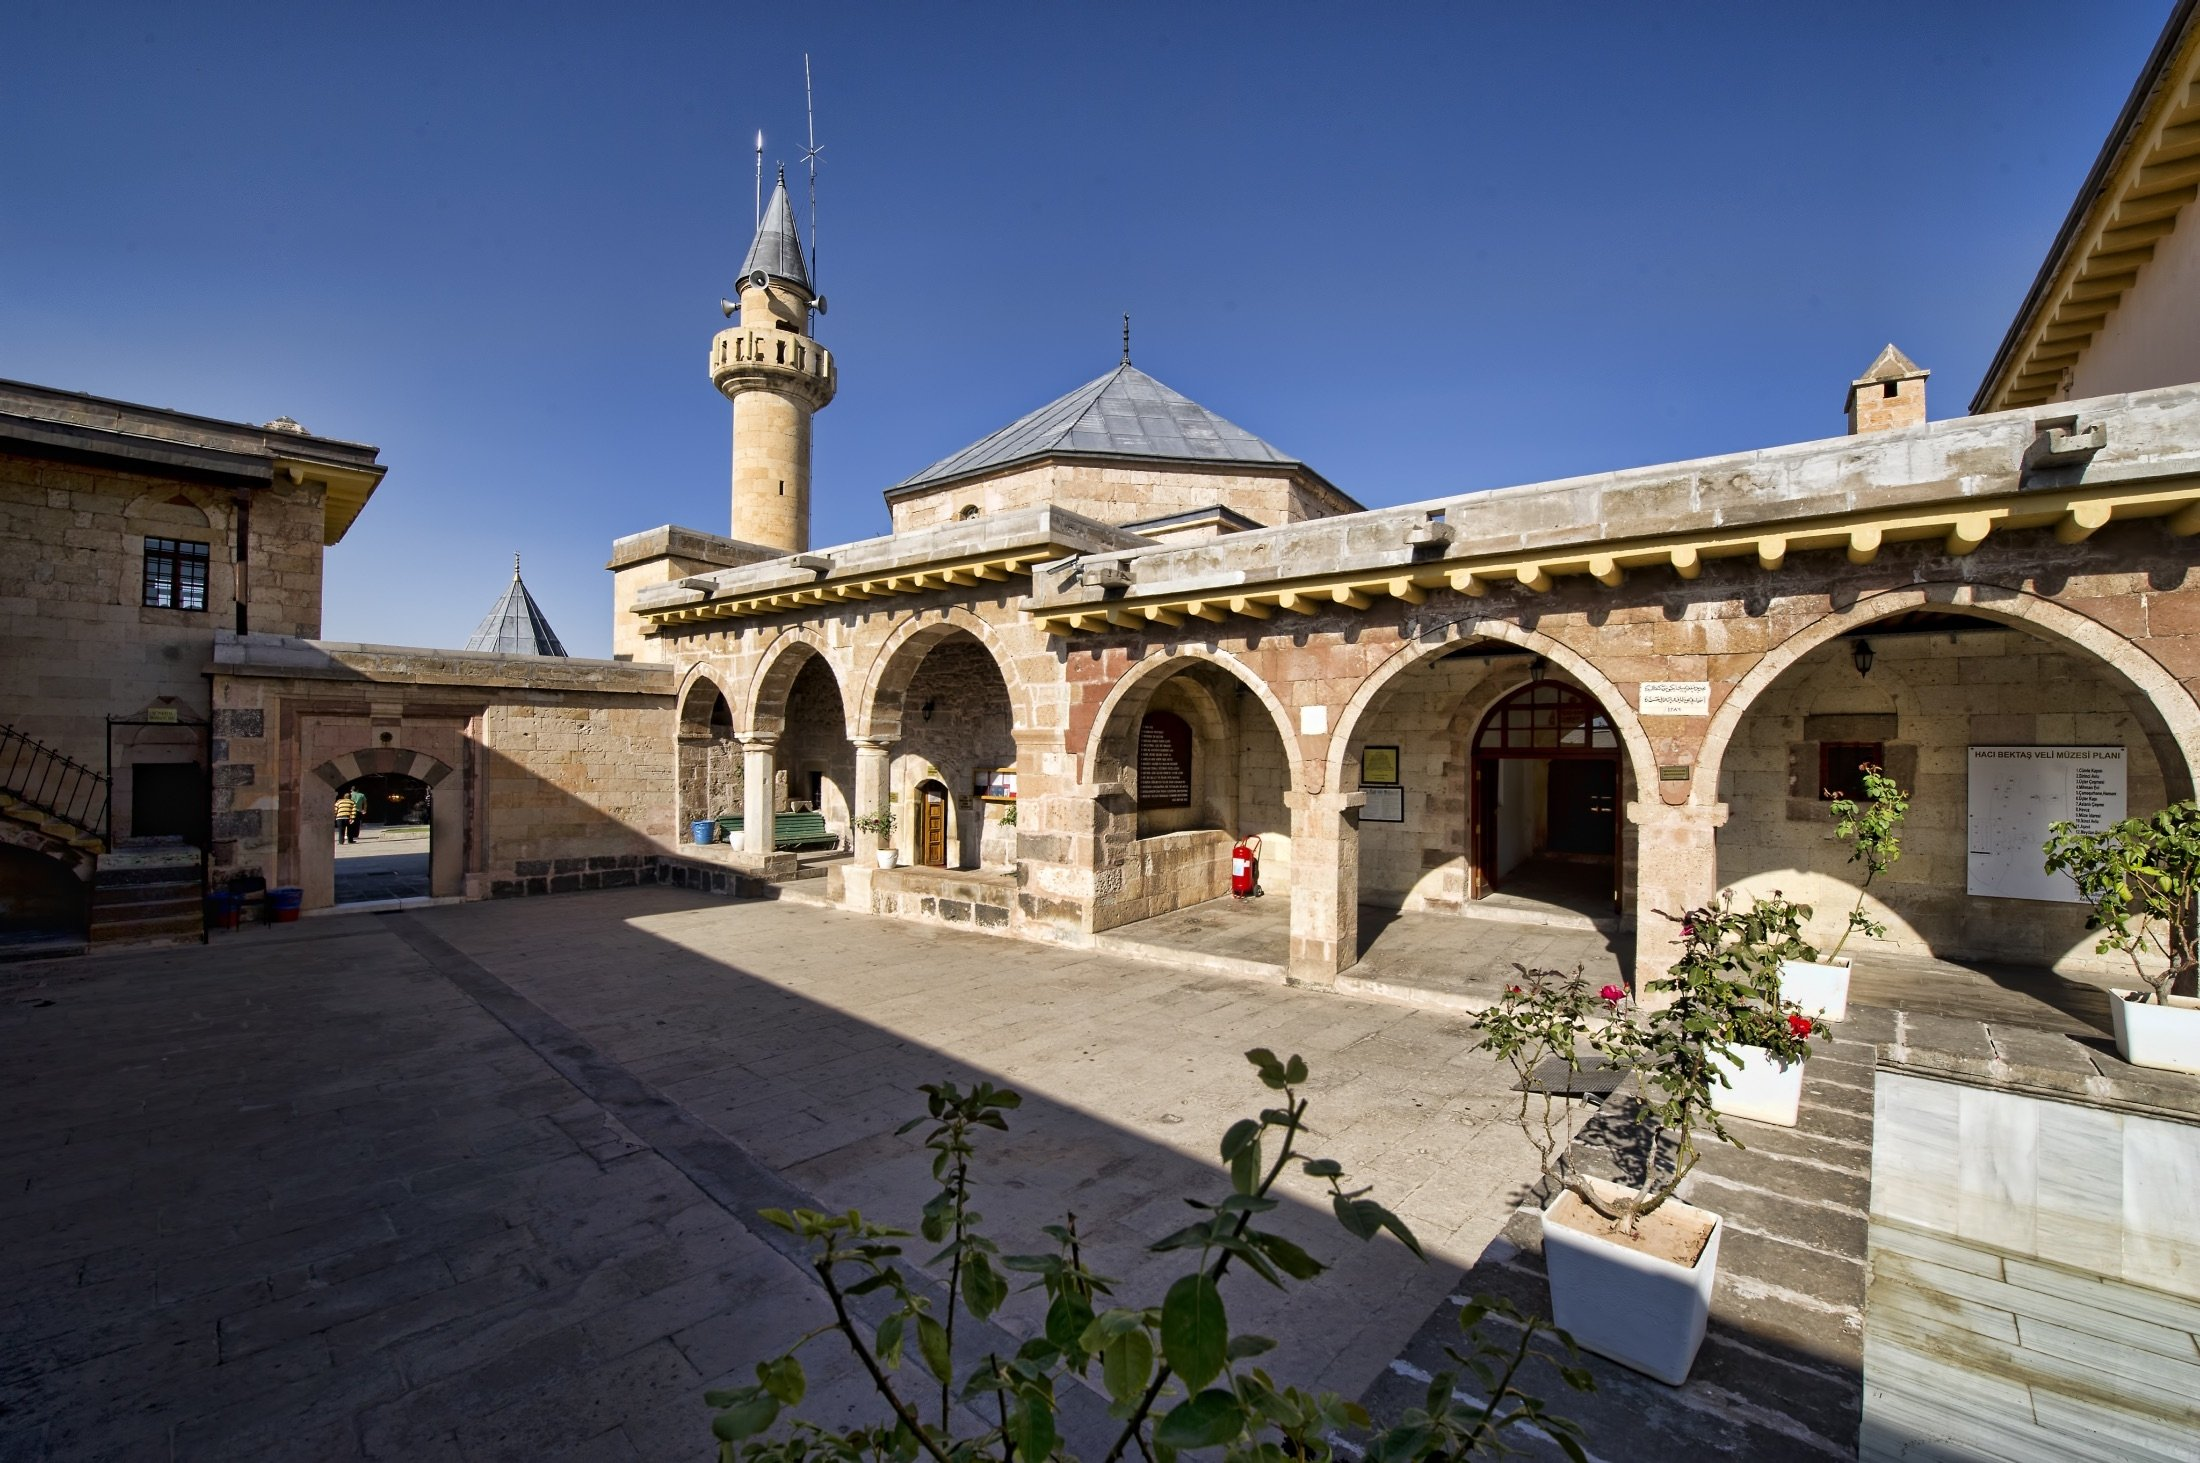 The minaret, mosque and garden of the Hacı Bektaş Veli complex, which also includes the Sufi saint's tomb and a museum, can be seen in Nevşehir, Turkey, Sept. 6, 2011. (Shutterstock Photo)